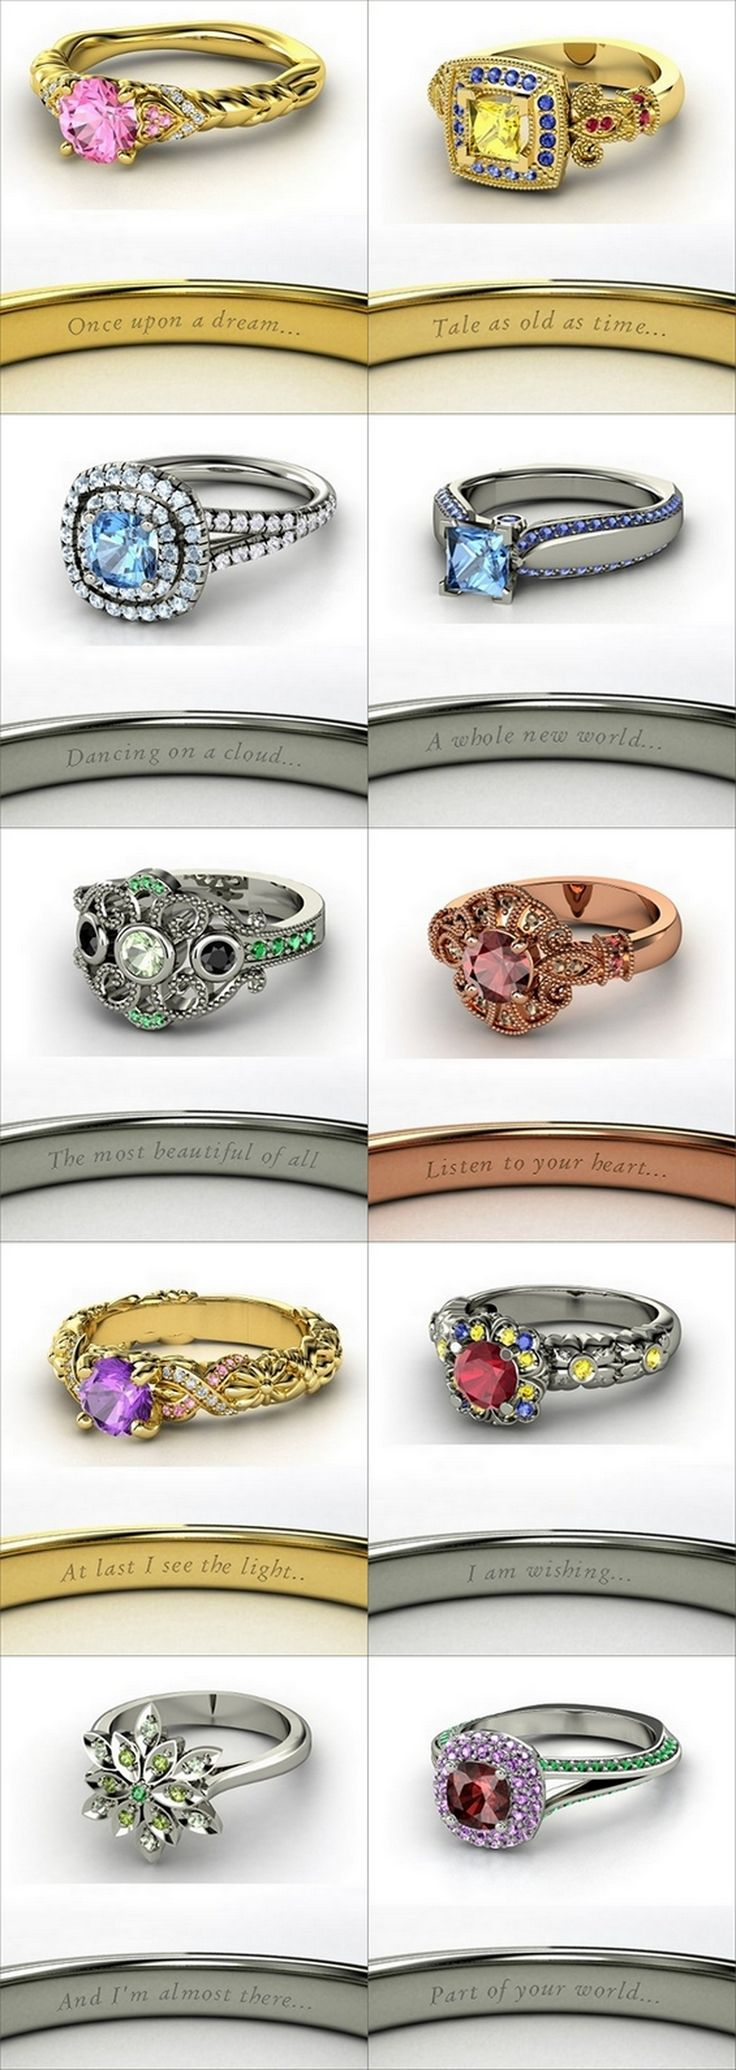 Modern #rings inspired from #Disney princesses